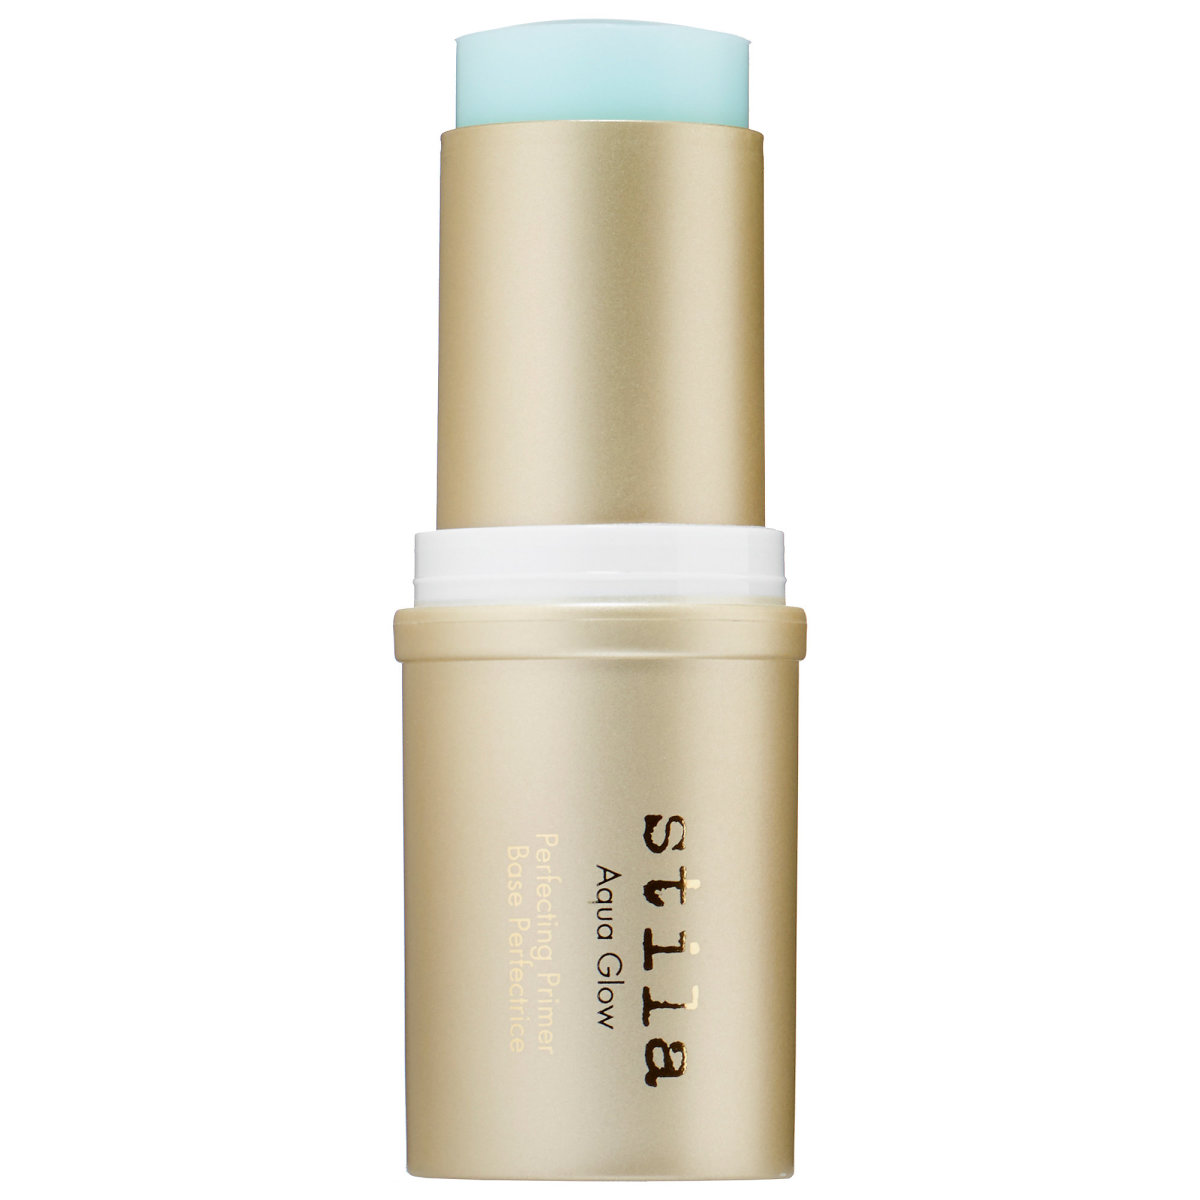 Think 'dewy', not 'sweaty.' Stila Aqua Glow Perfecting Primer, $28, available at Sephora.